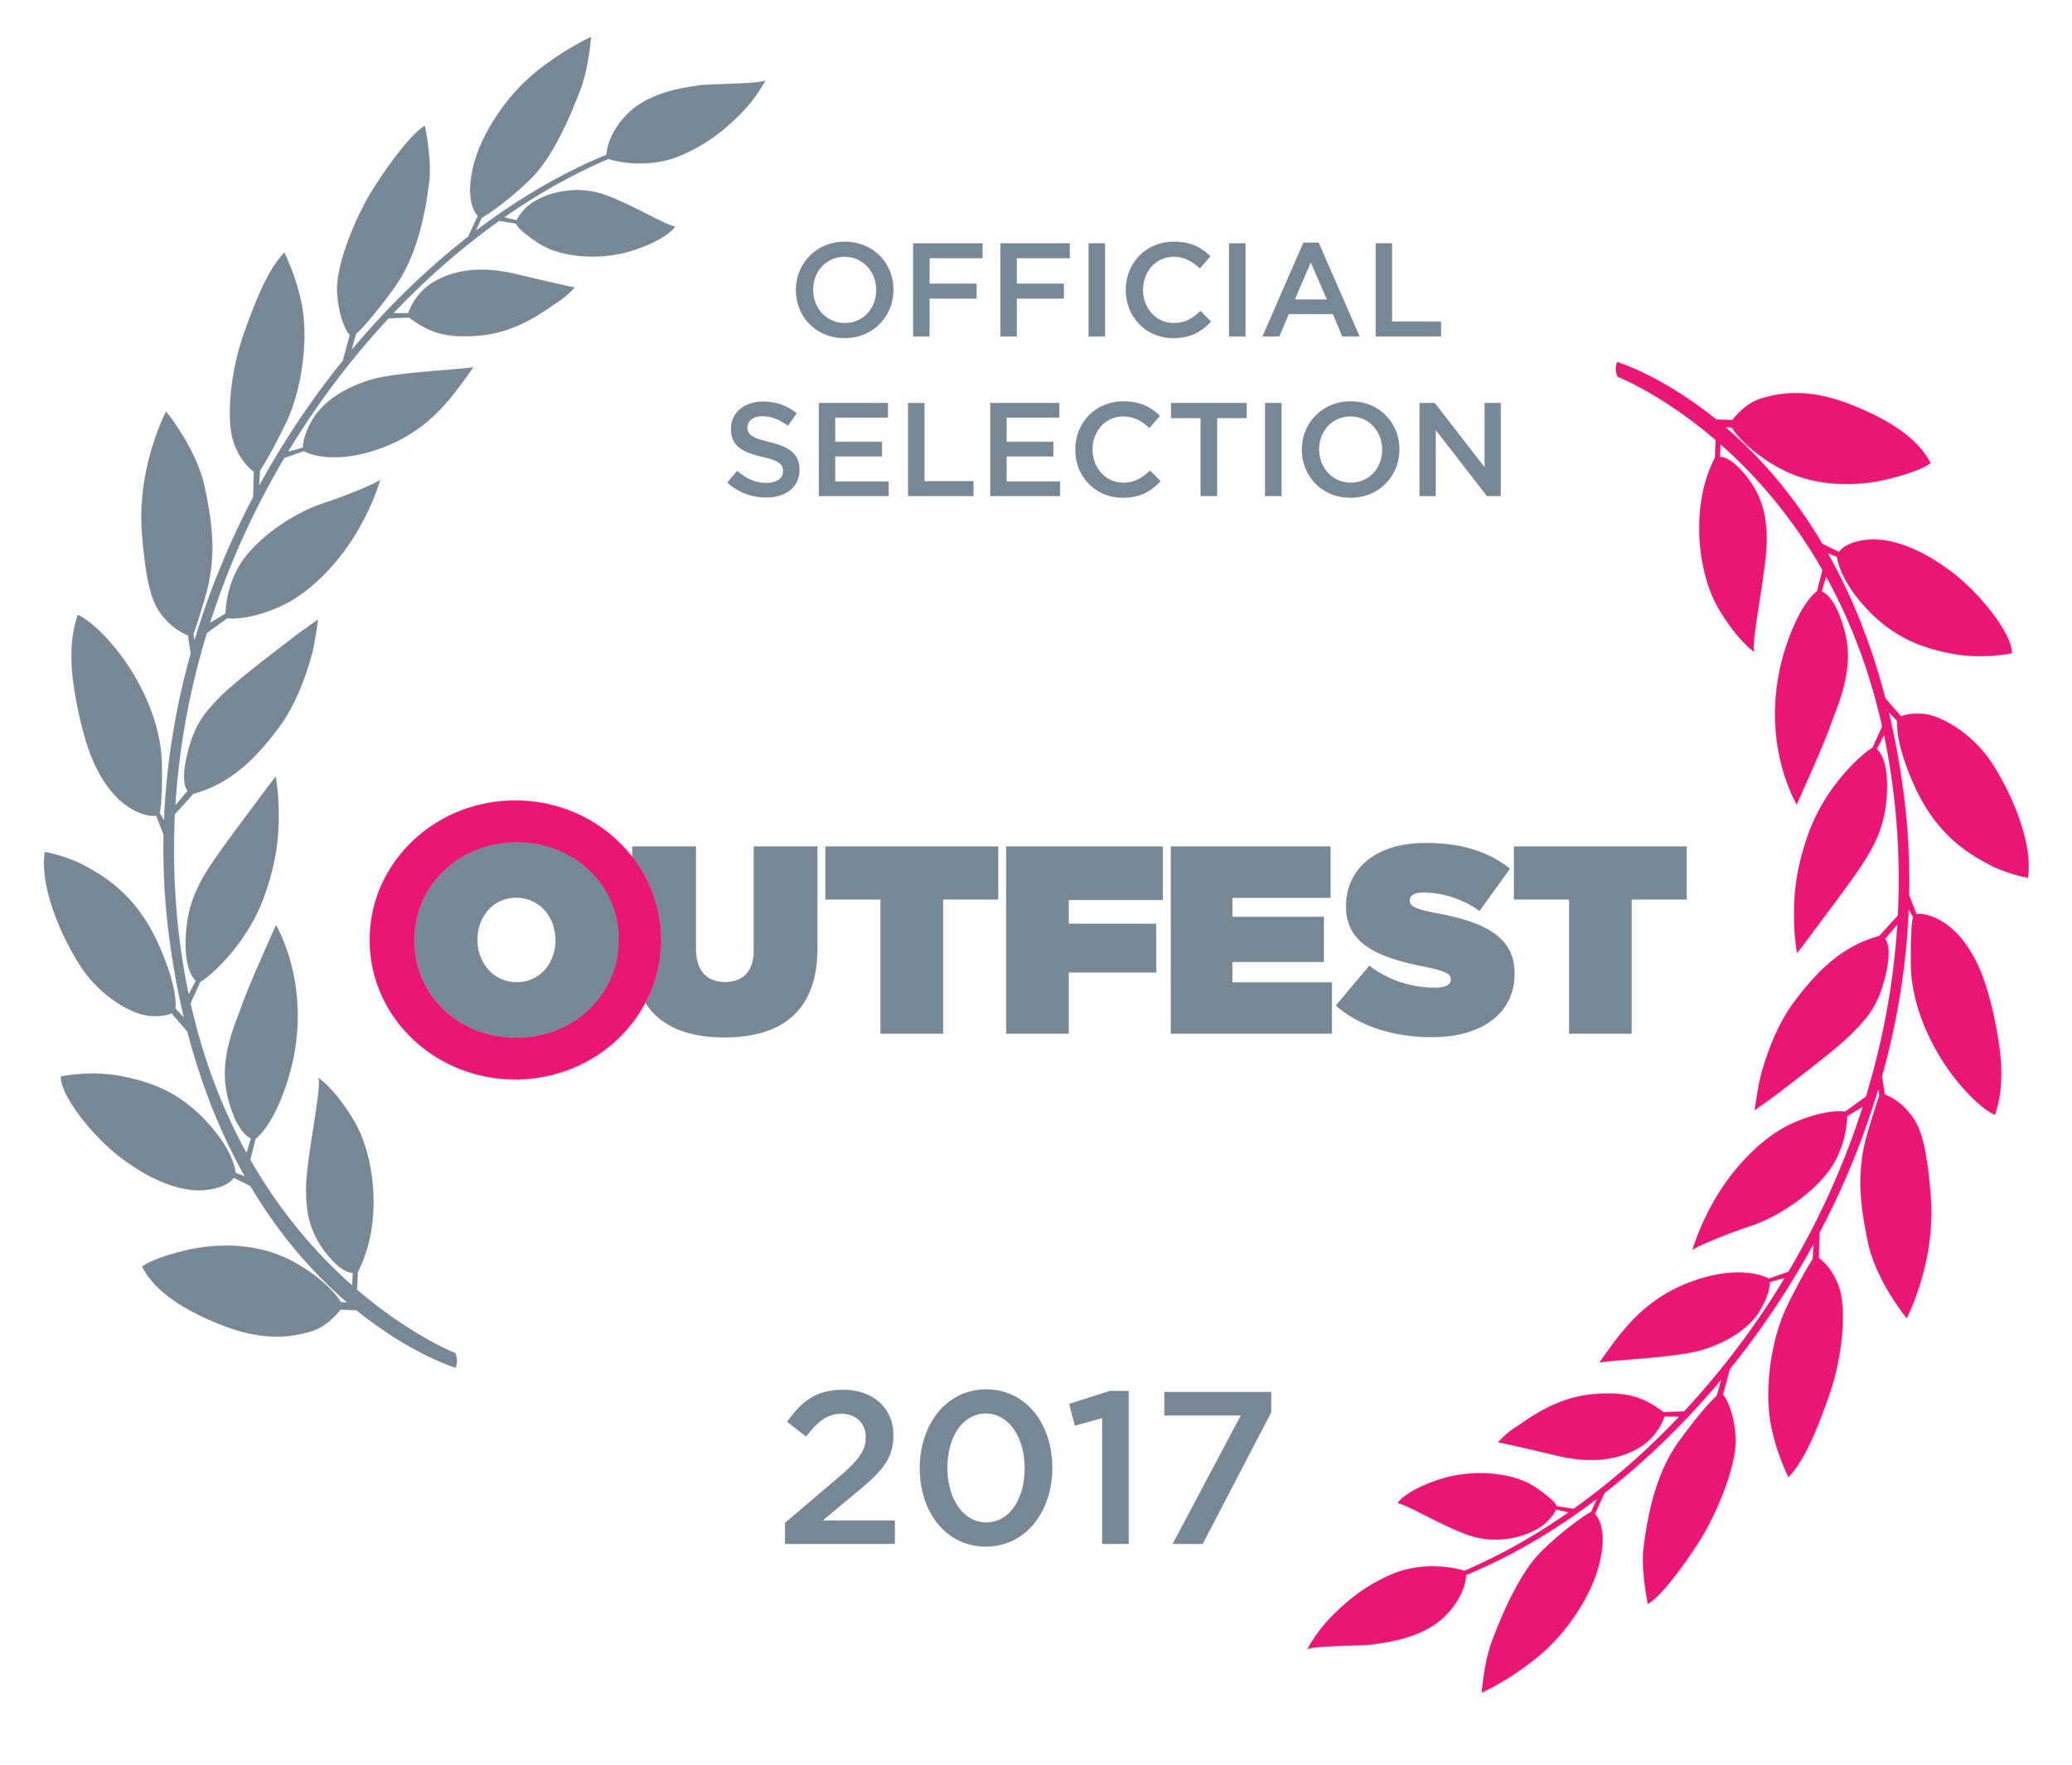 Outfest_ColorLaurels-01.png